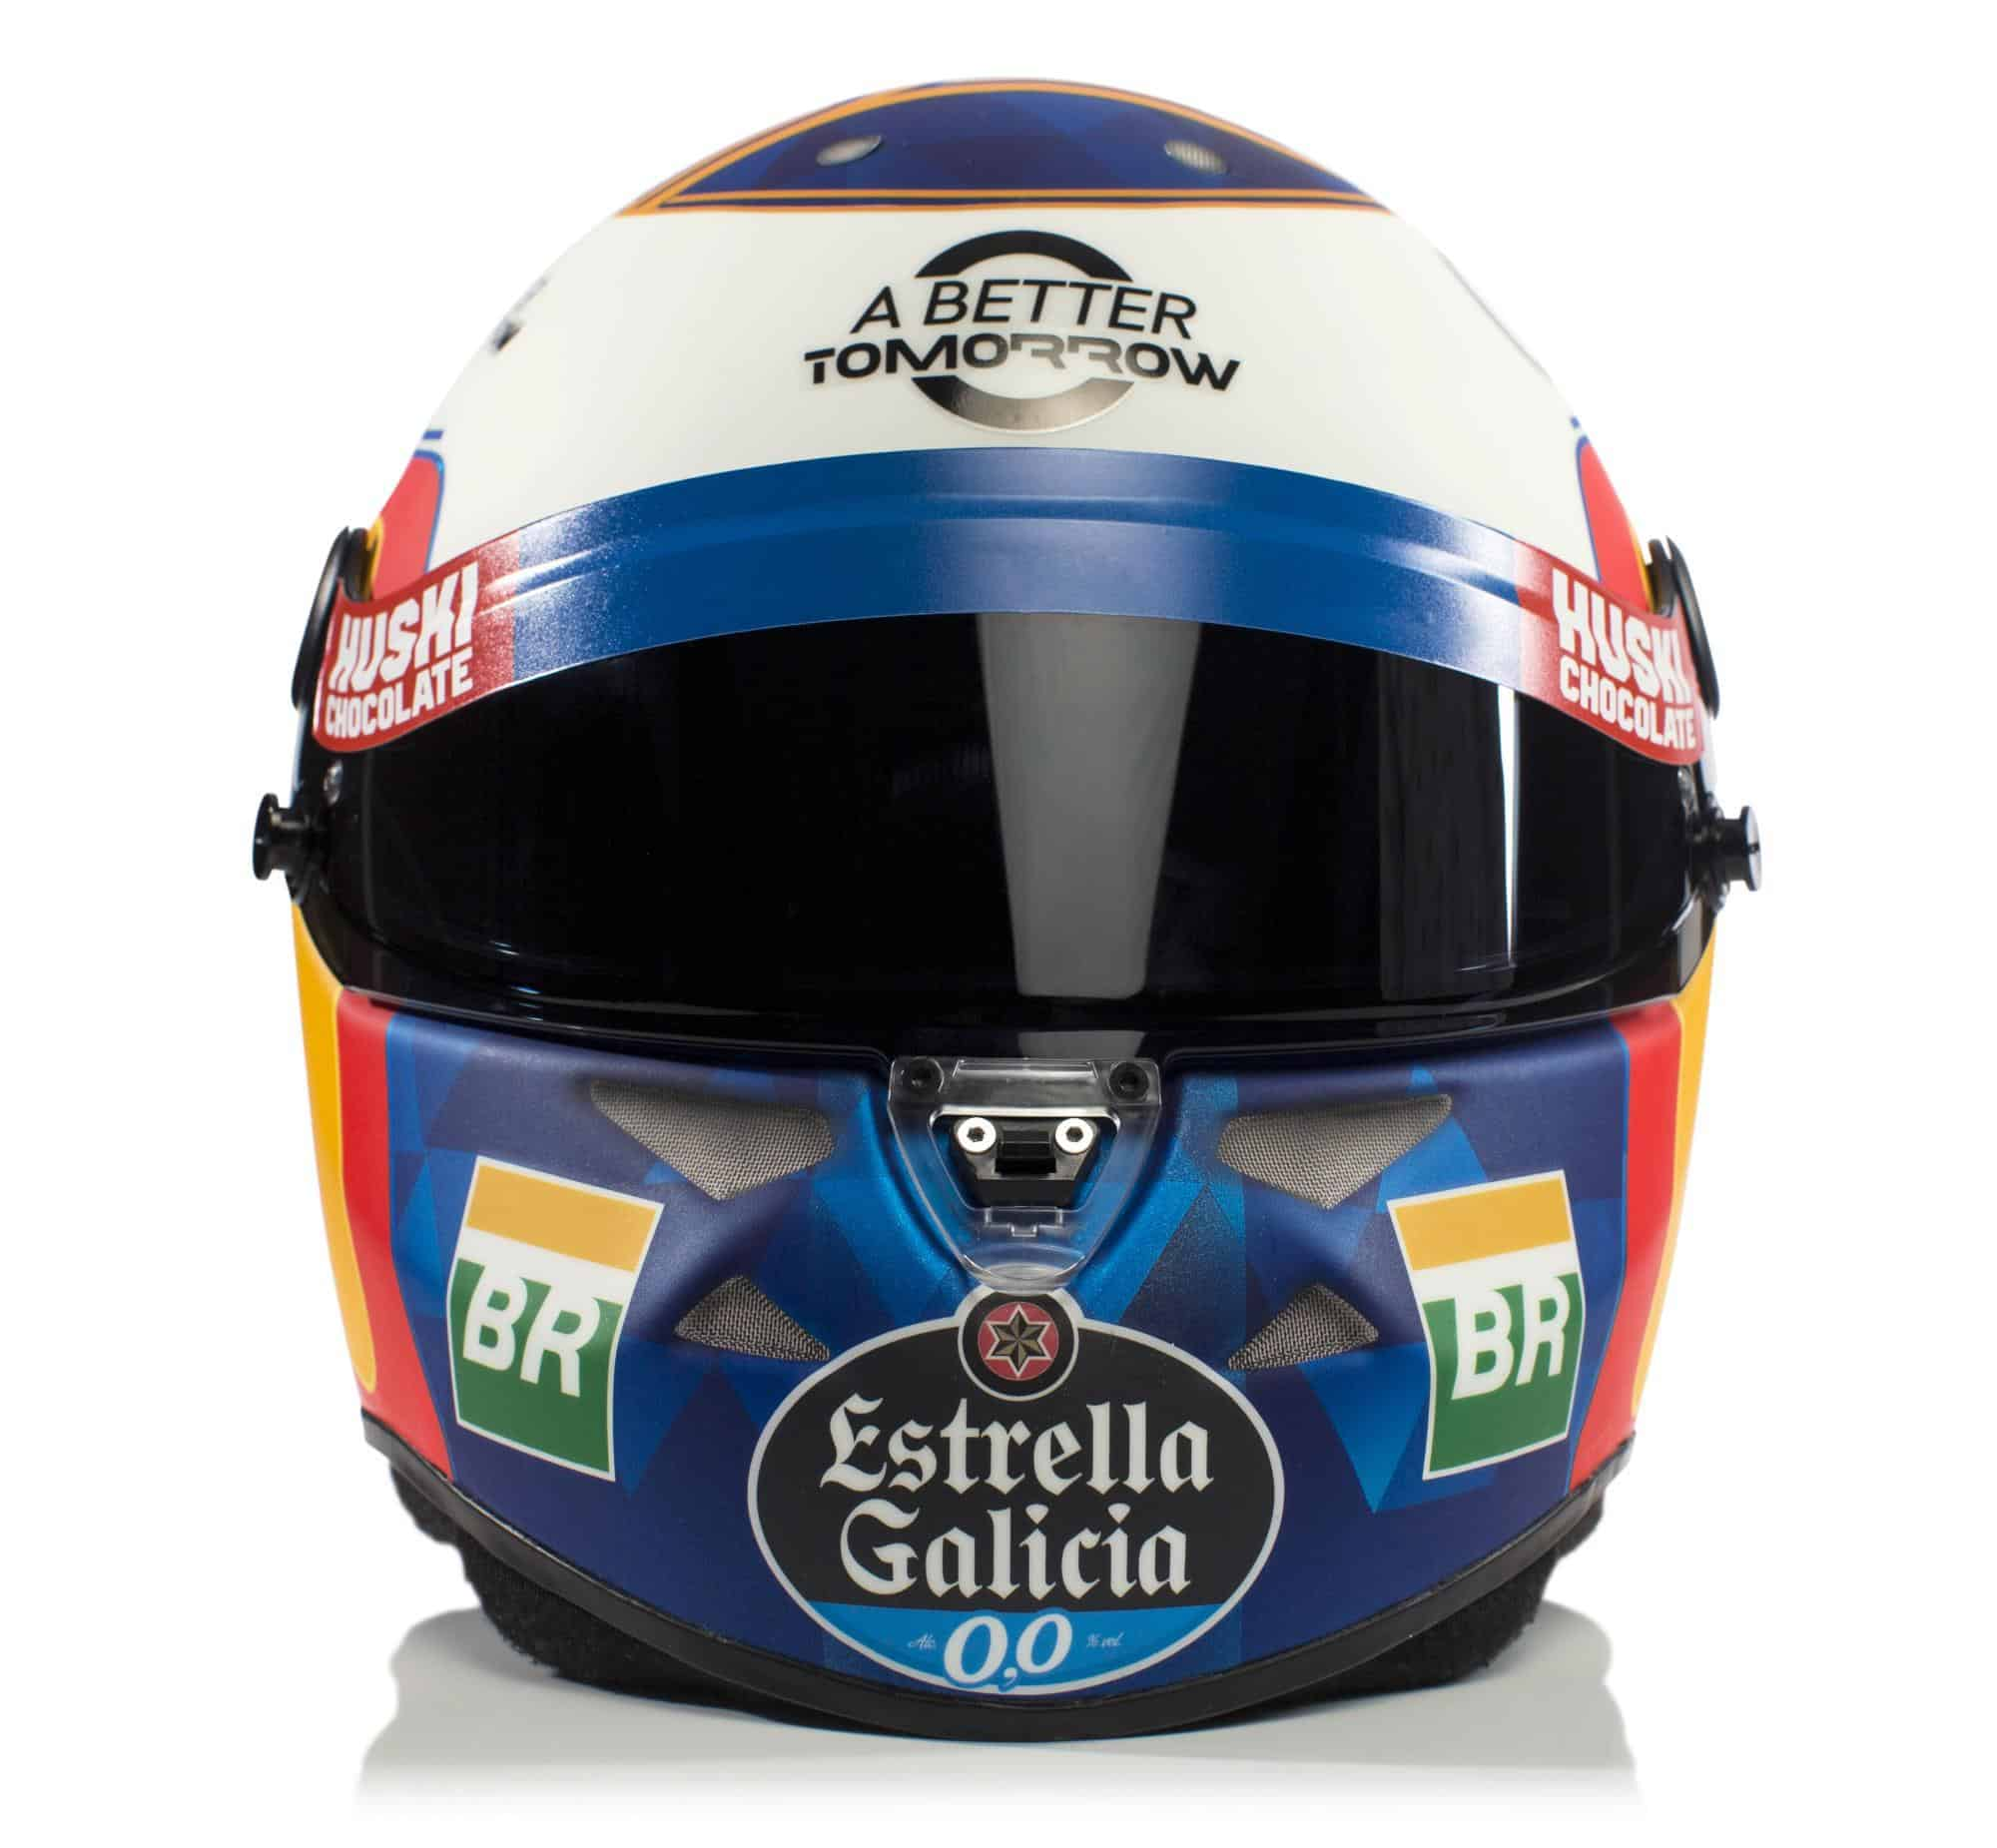 2019 F1 Carlos Sainz helmet McLaren Renault front Photo McLaren Edited by MAXF1net